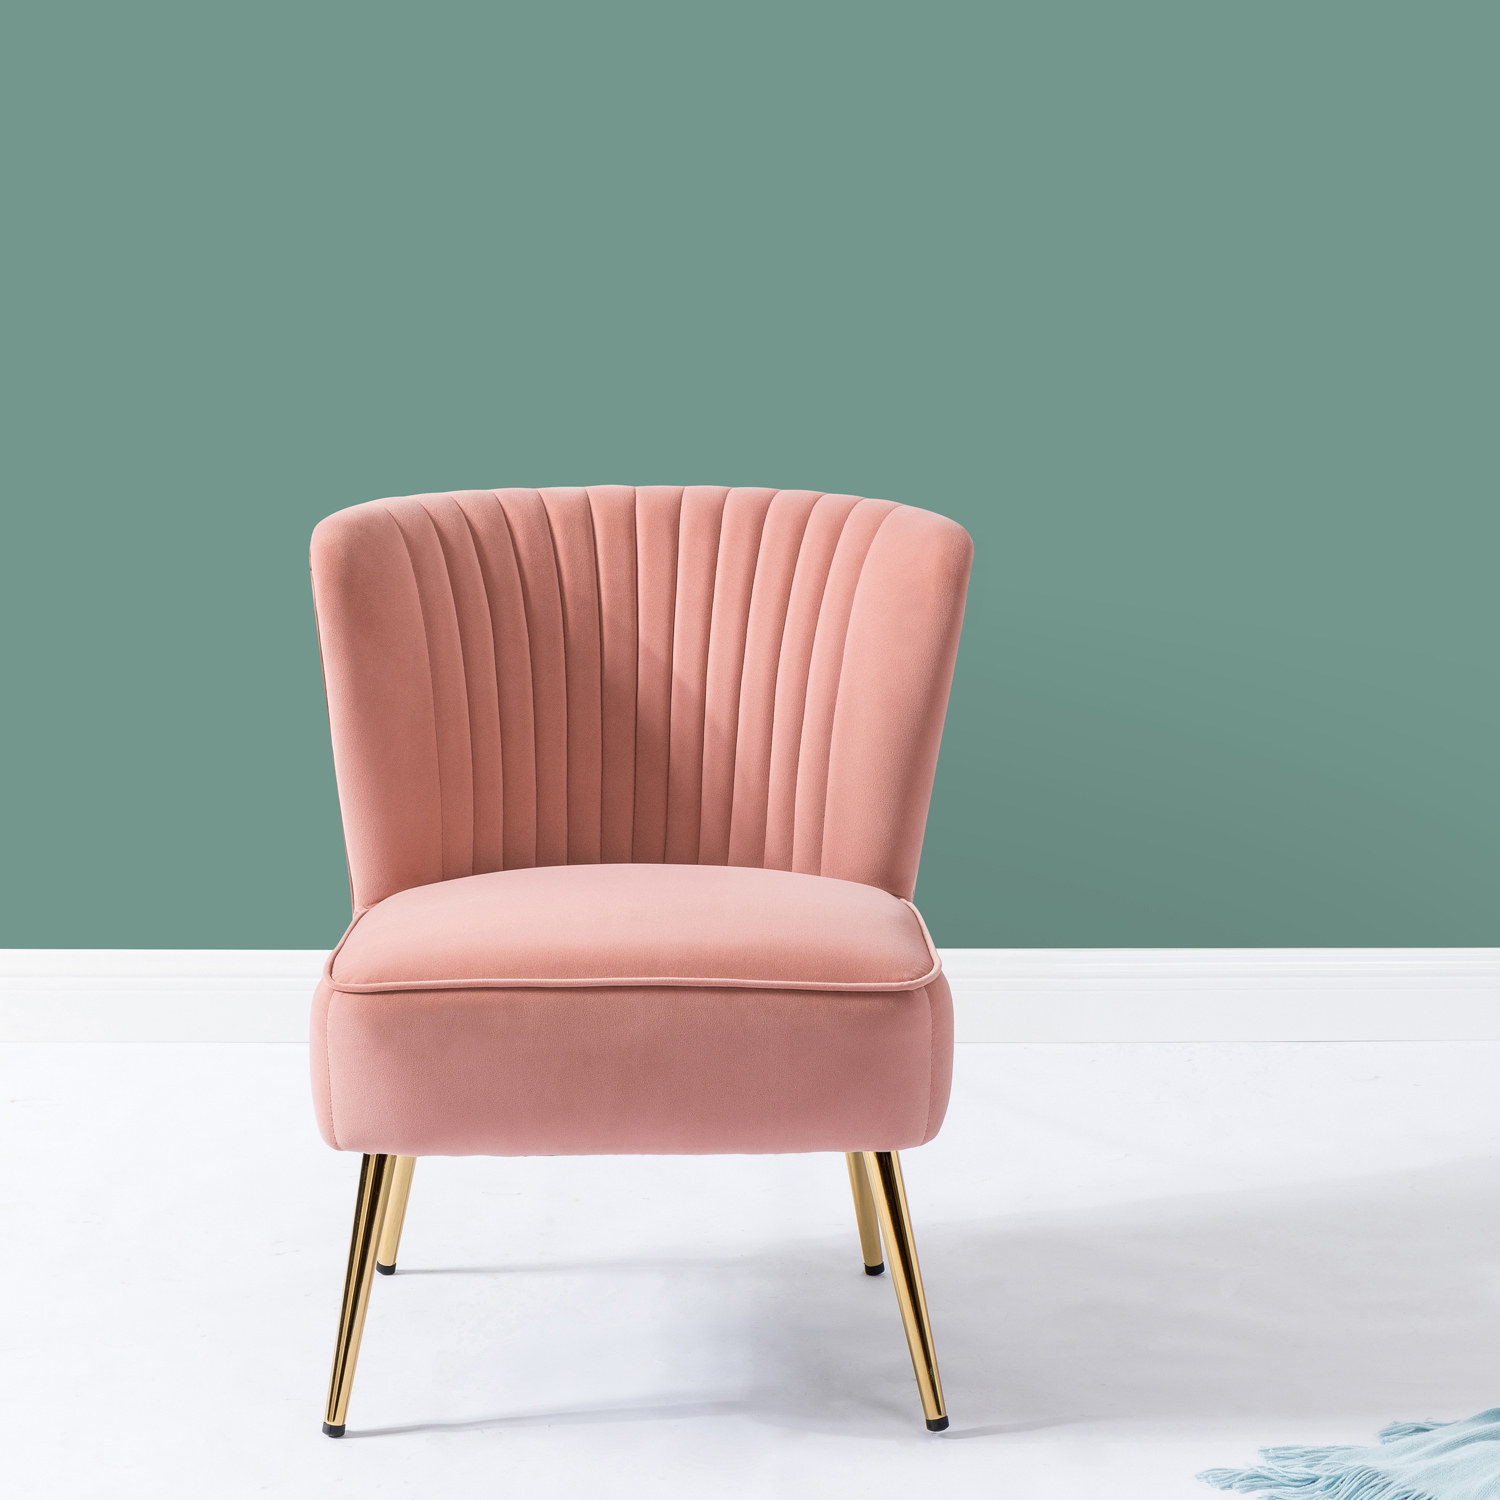 Pink velvet chair with gold posts